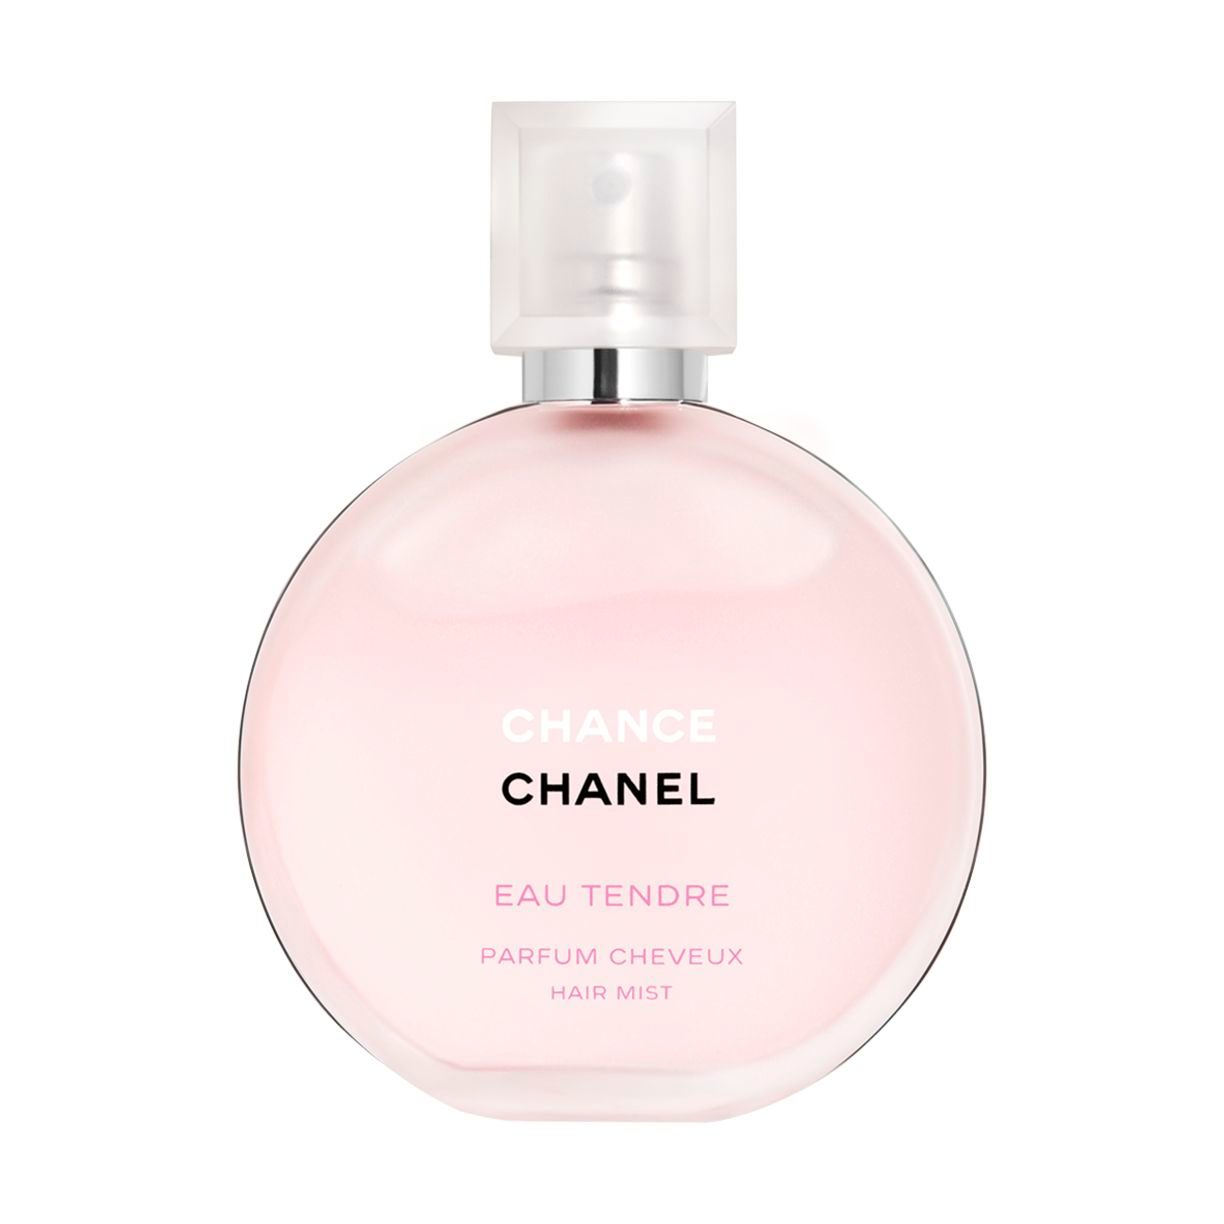 CHANCE EAU TENDRE PROFUMO PER I CAPELLI 35ml